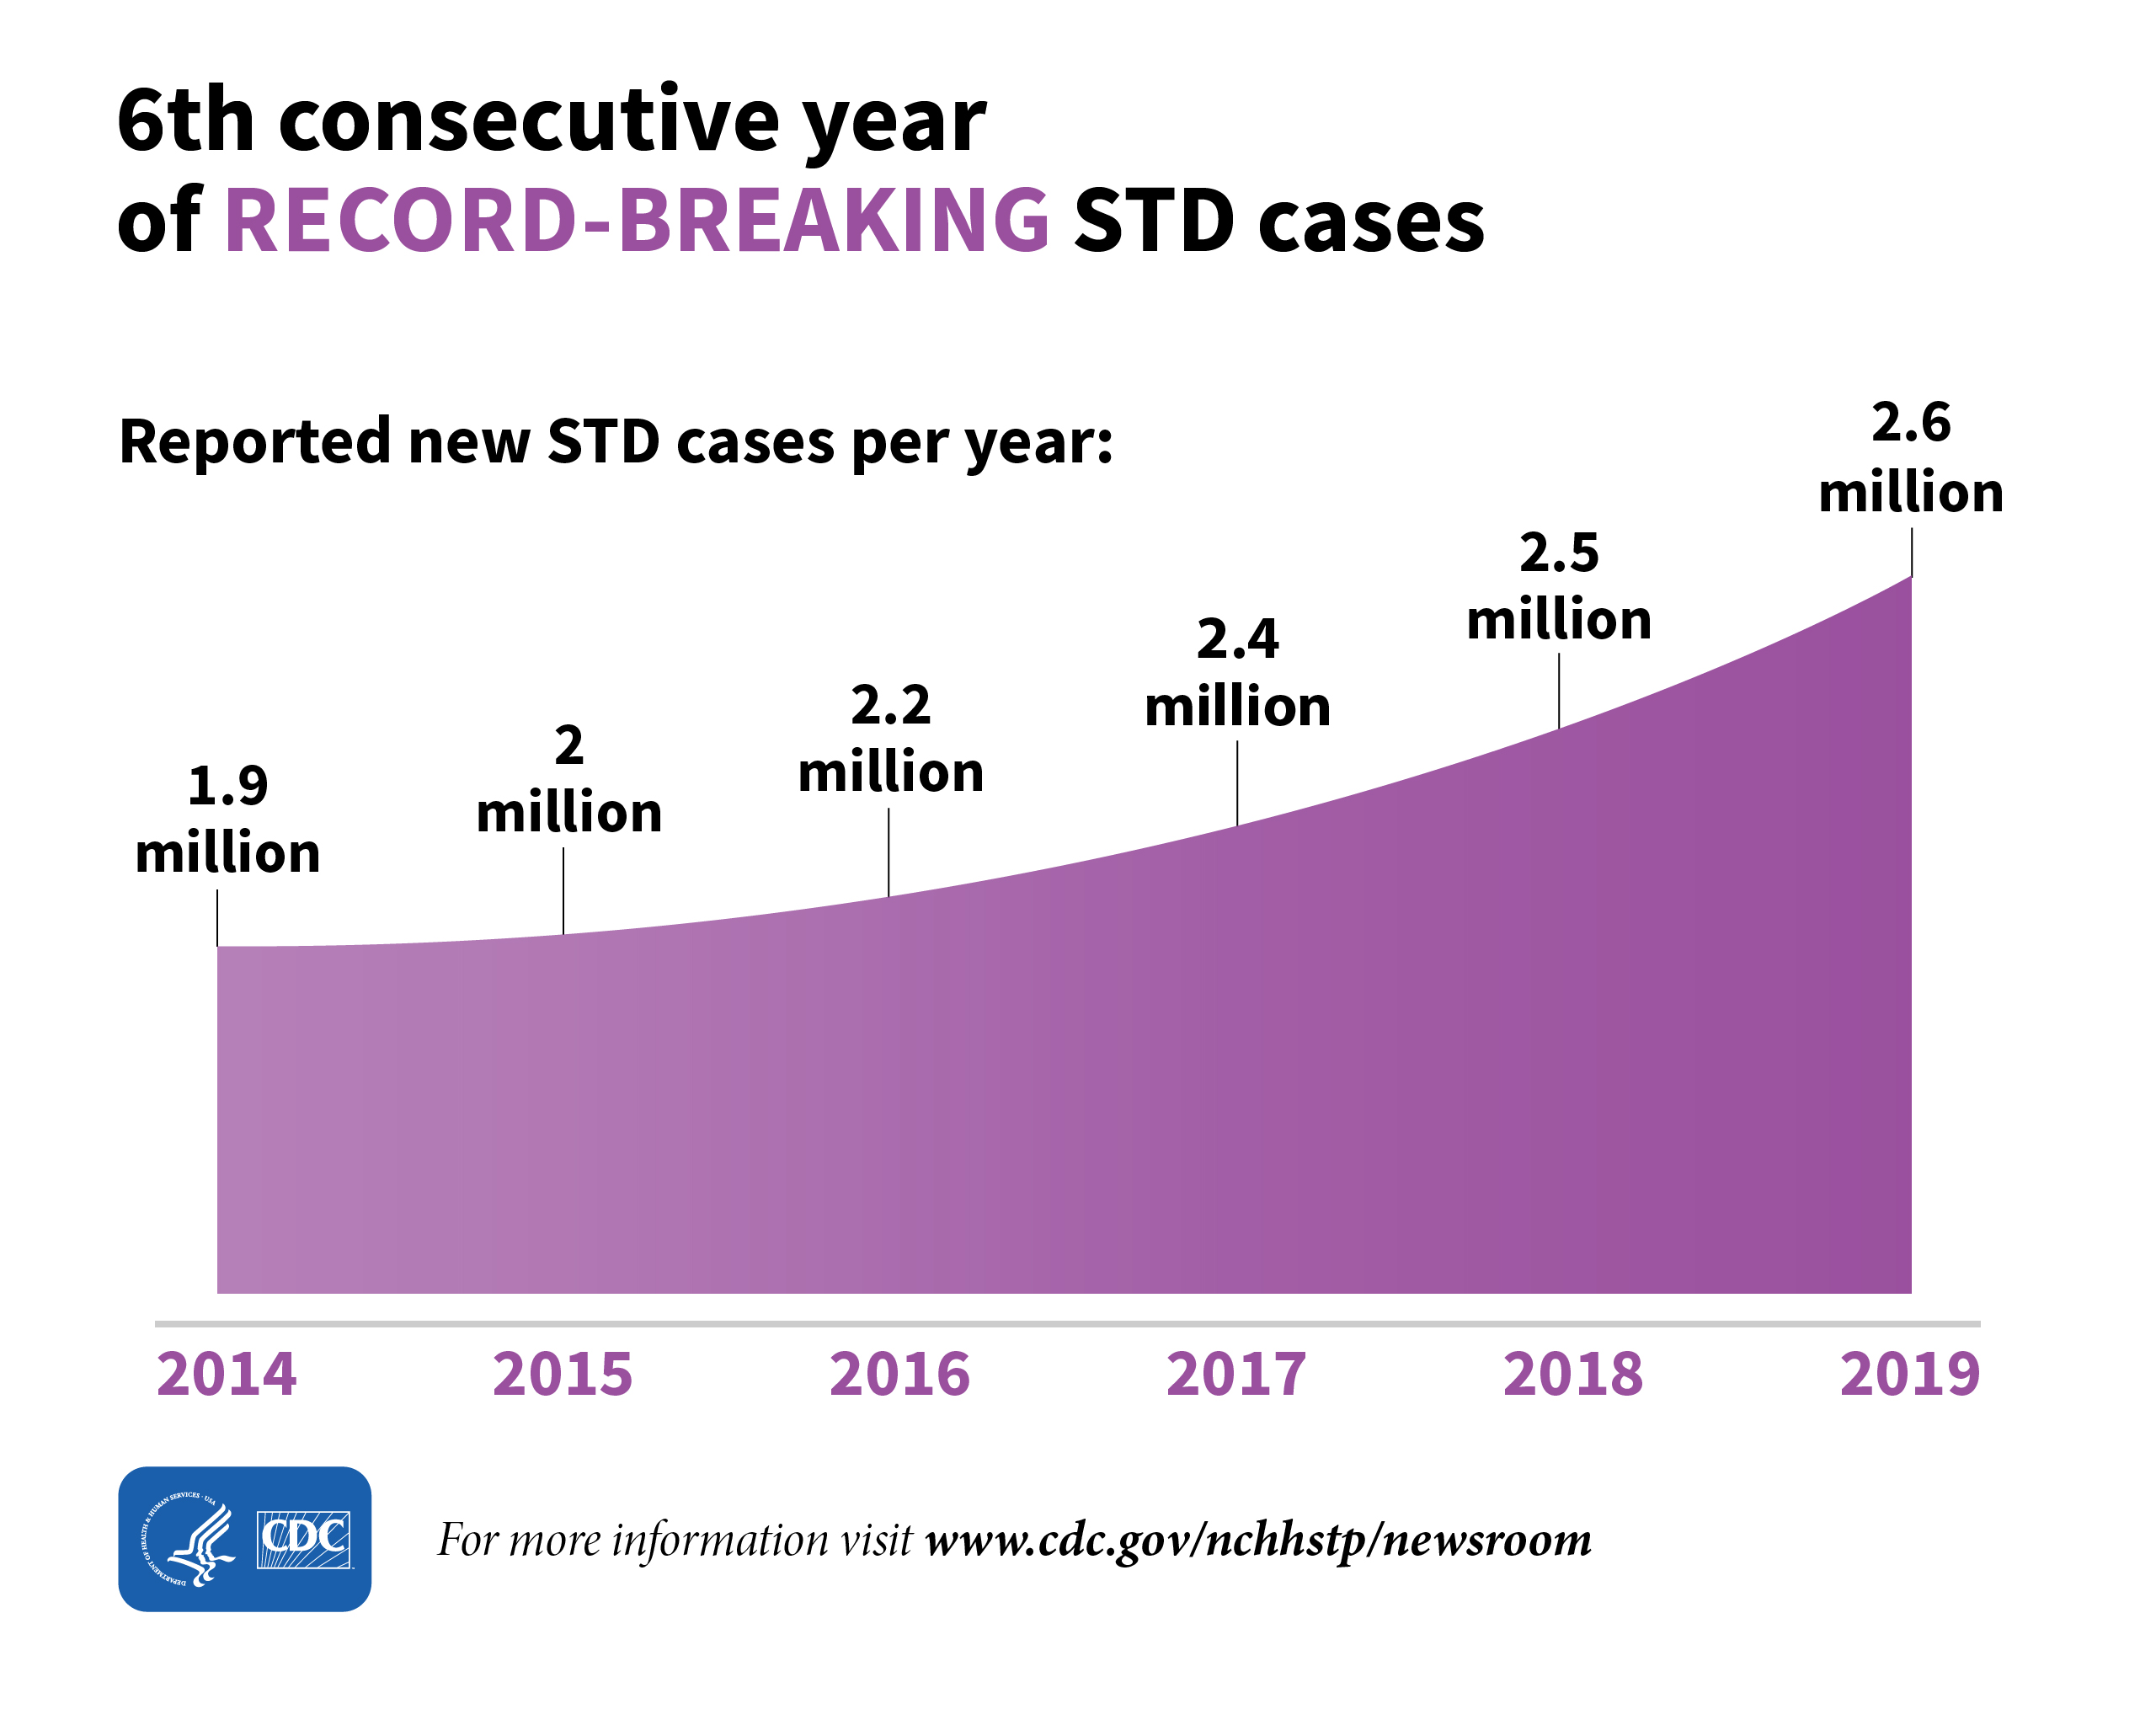 The line graph shows the reported new STD cases per year from 2014 to 2019 and that 2019 was the 6th consecutive year of record-breaking STD cases. There were approximately 1.9 million reported new STD cases in 2014, 2 million in 2015, 2.2 million in 2016, 2.4 million in 2017, 2.5 million in 2018, and 2.6 million in 2019.